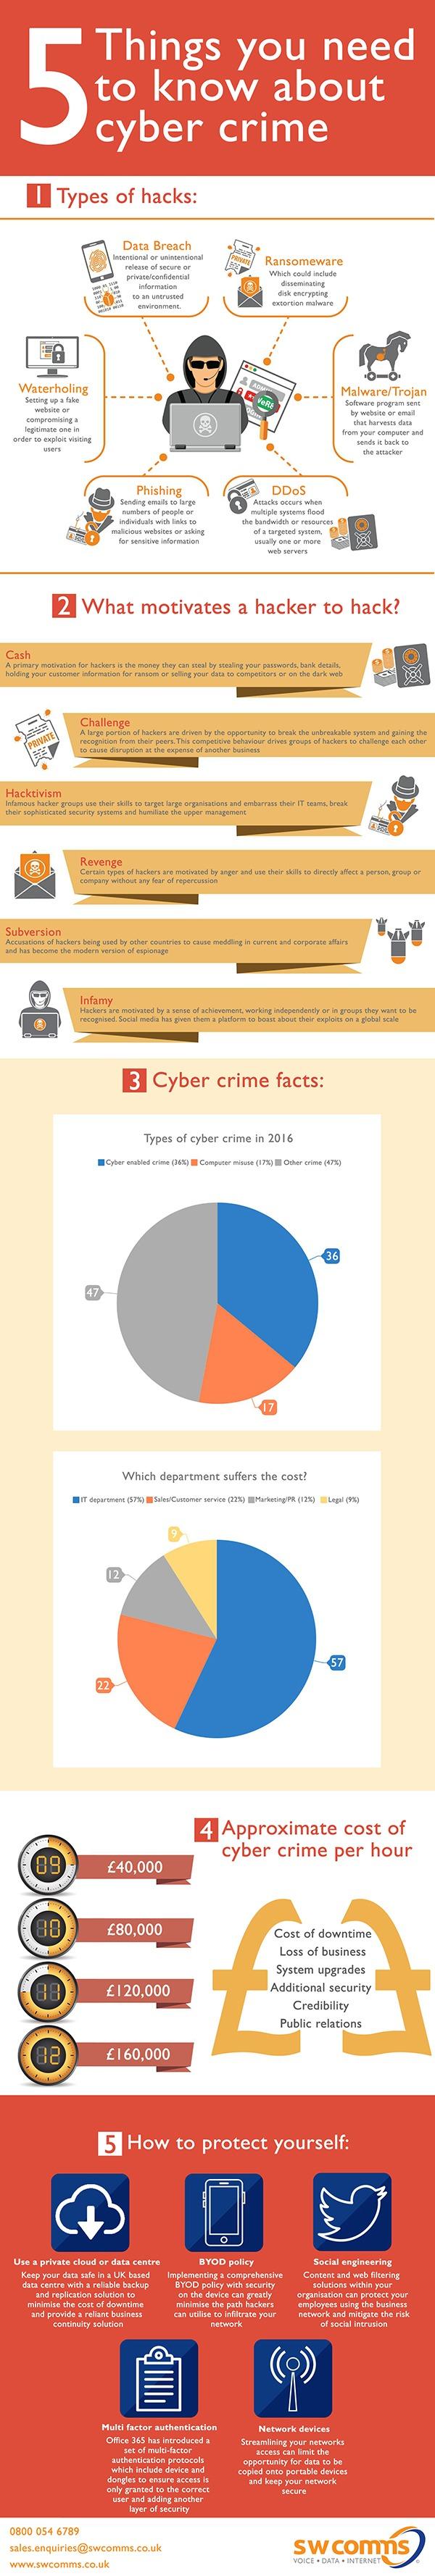 5 facts about cyber crime - swcomms